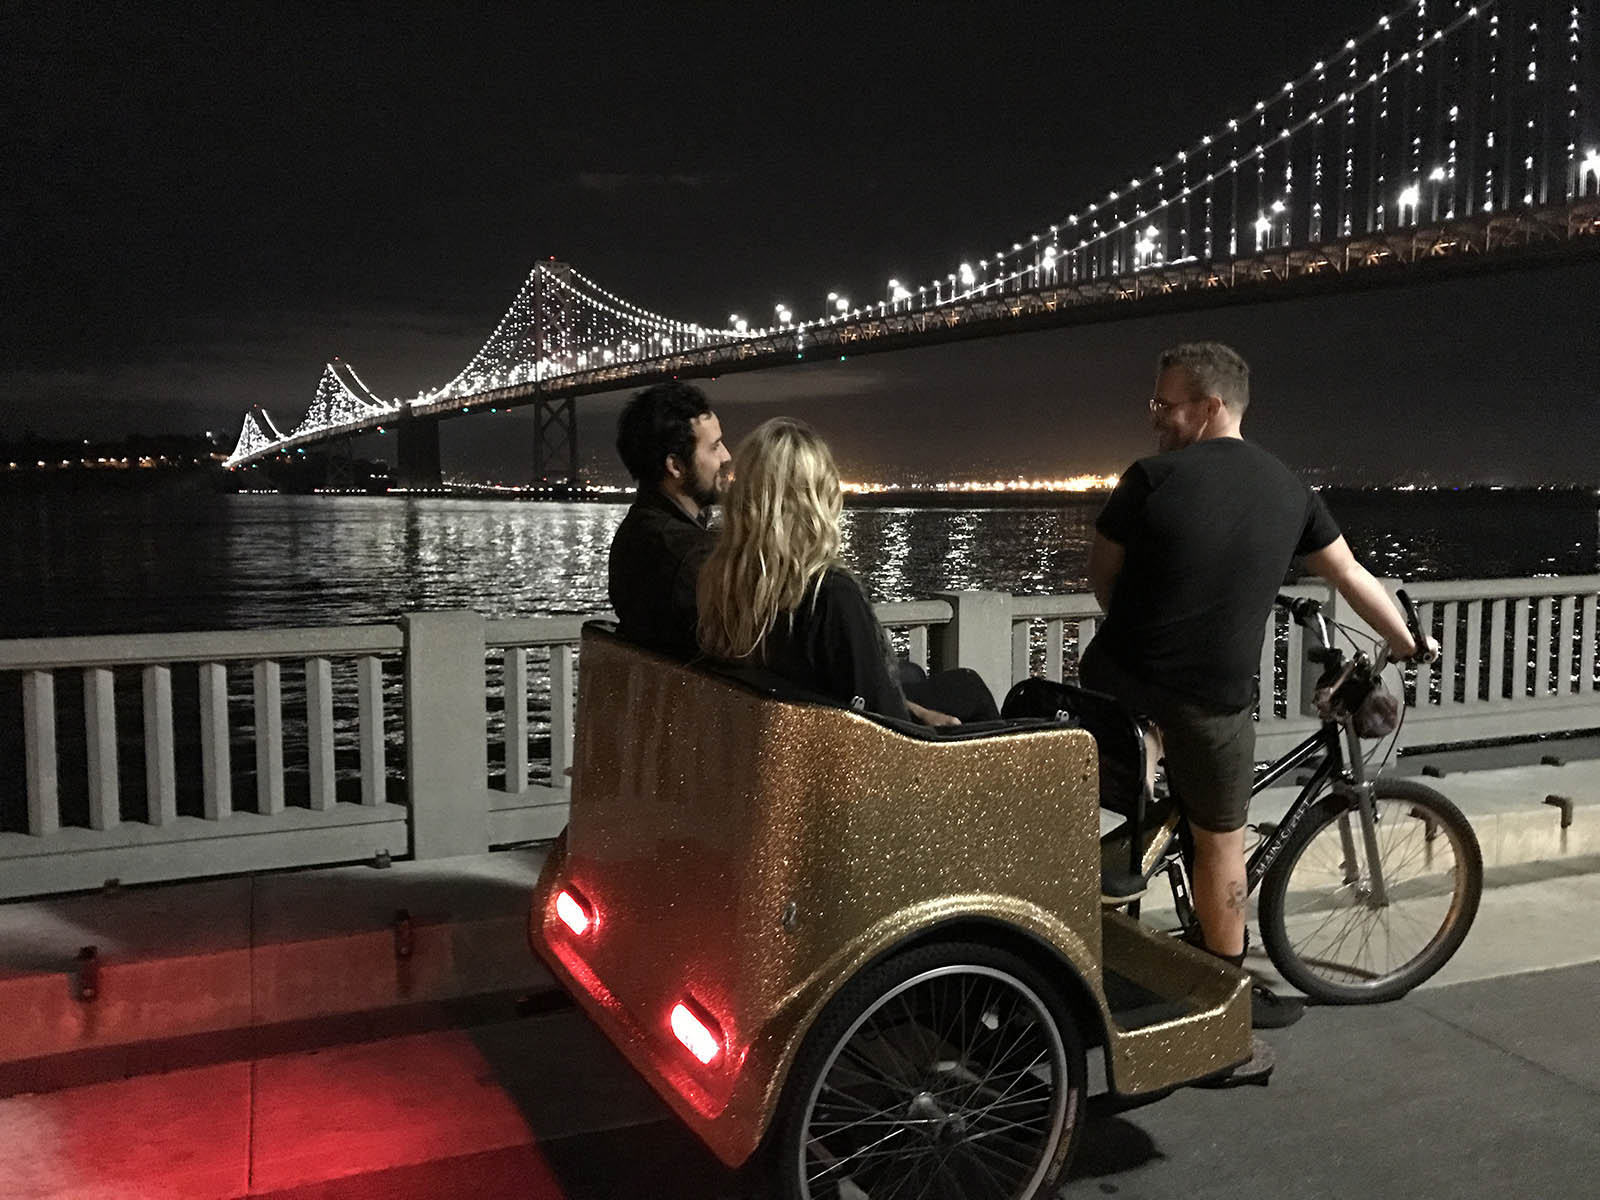 Enjoy the Bay Lights from the comforts of a San Francisco Pedicab